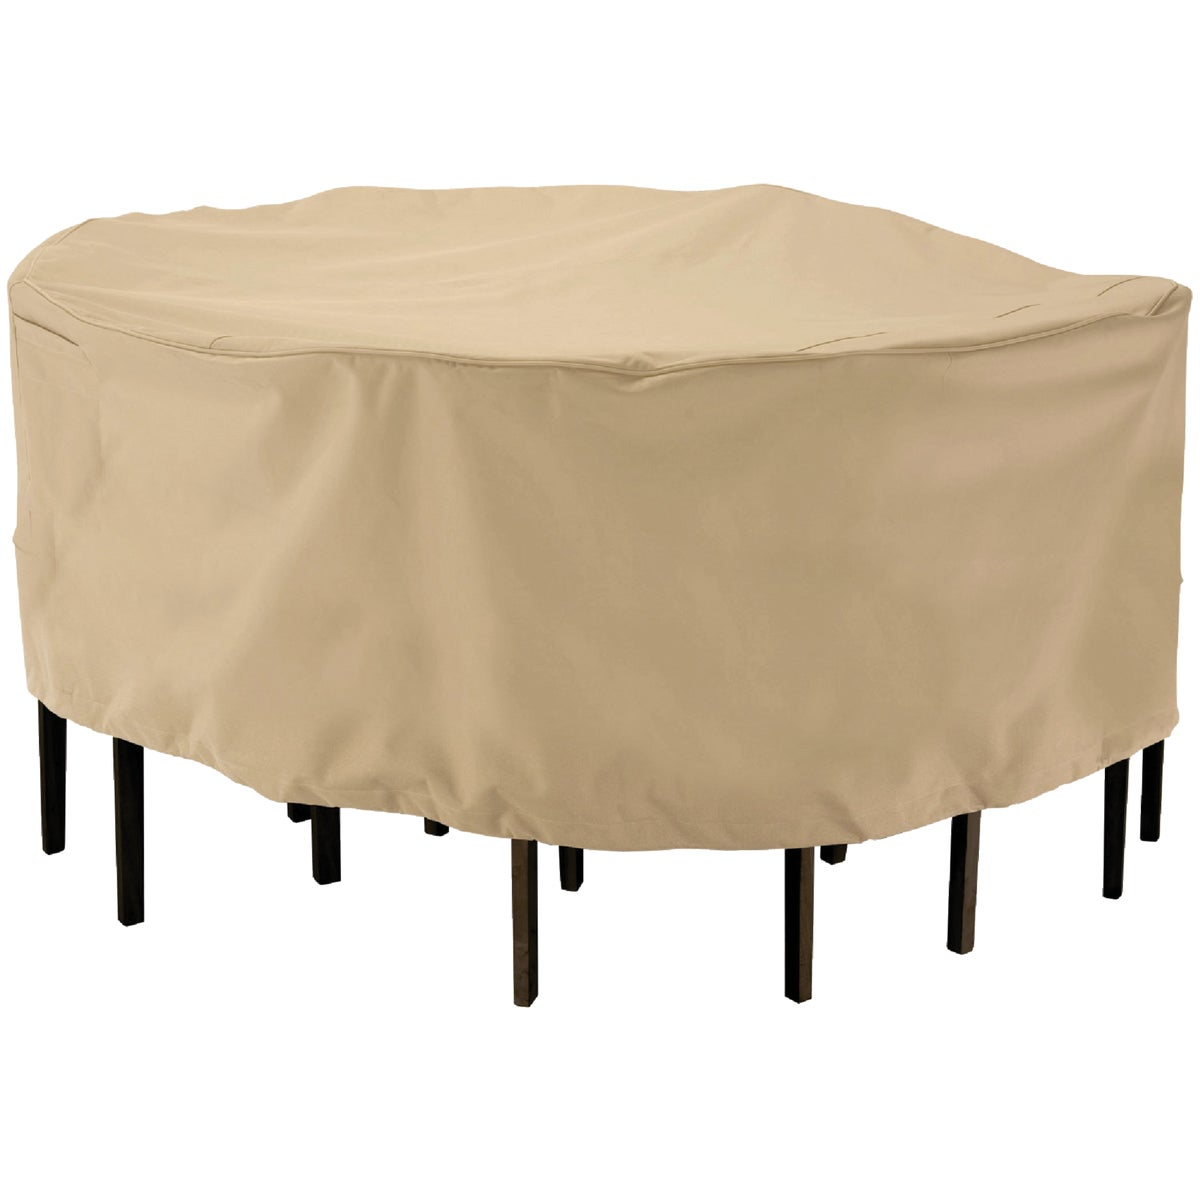 M RND TABLE/CHAIR COVER - 58212 by Classic Accessories